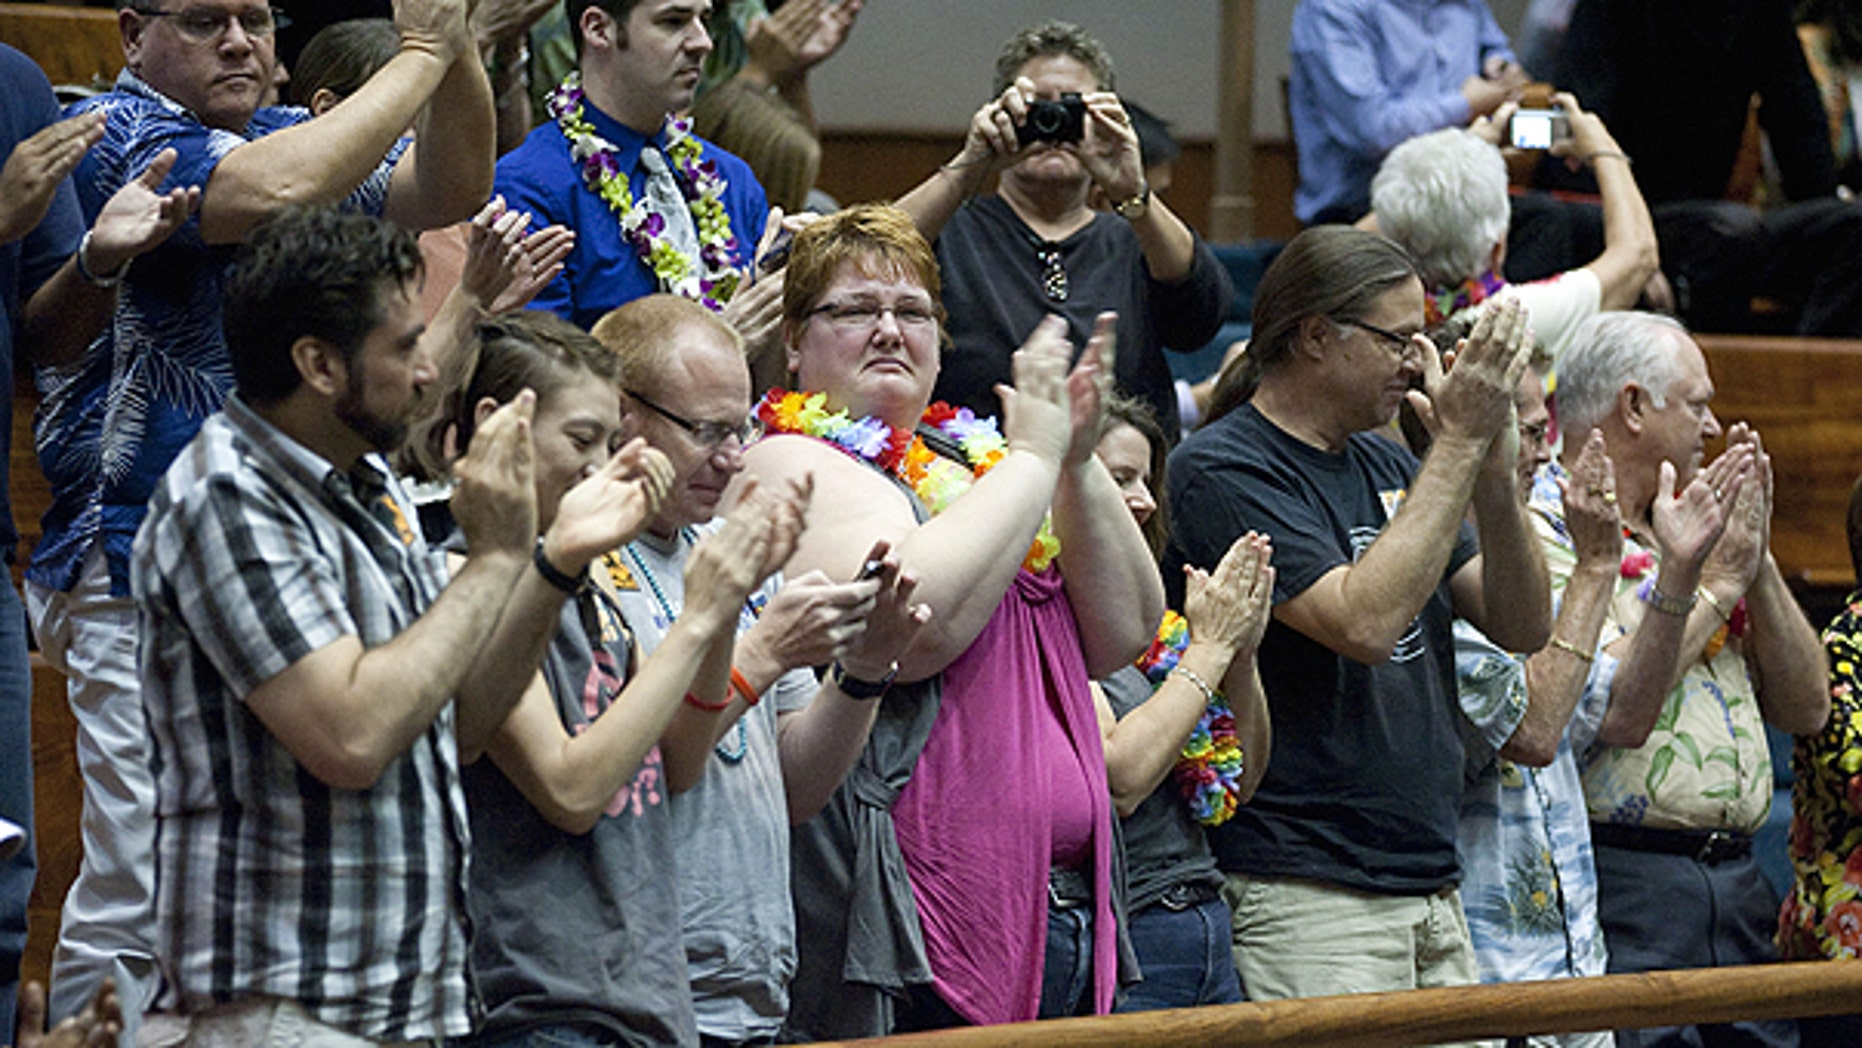 Feb. 16: Supports of the Hawaii Civil Unions Bill applaud, celebrating the Hawaii Senate's vote 18-5 to approve the Civil Unions bill at the State Capitol in Honolulu, Hawaii.